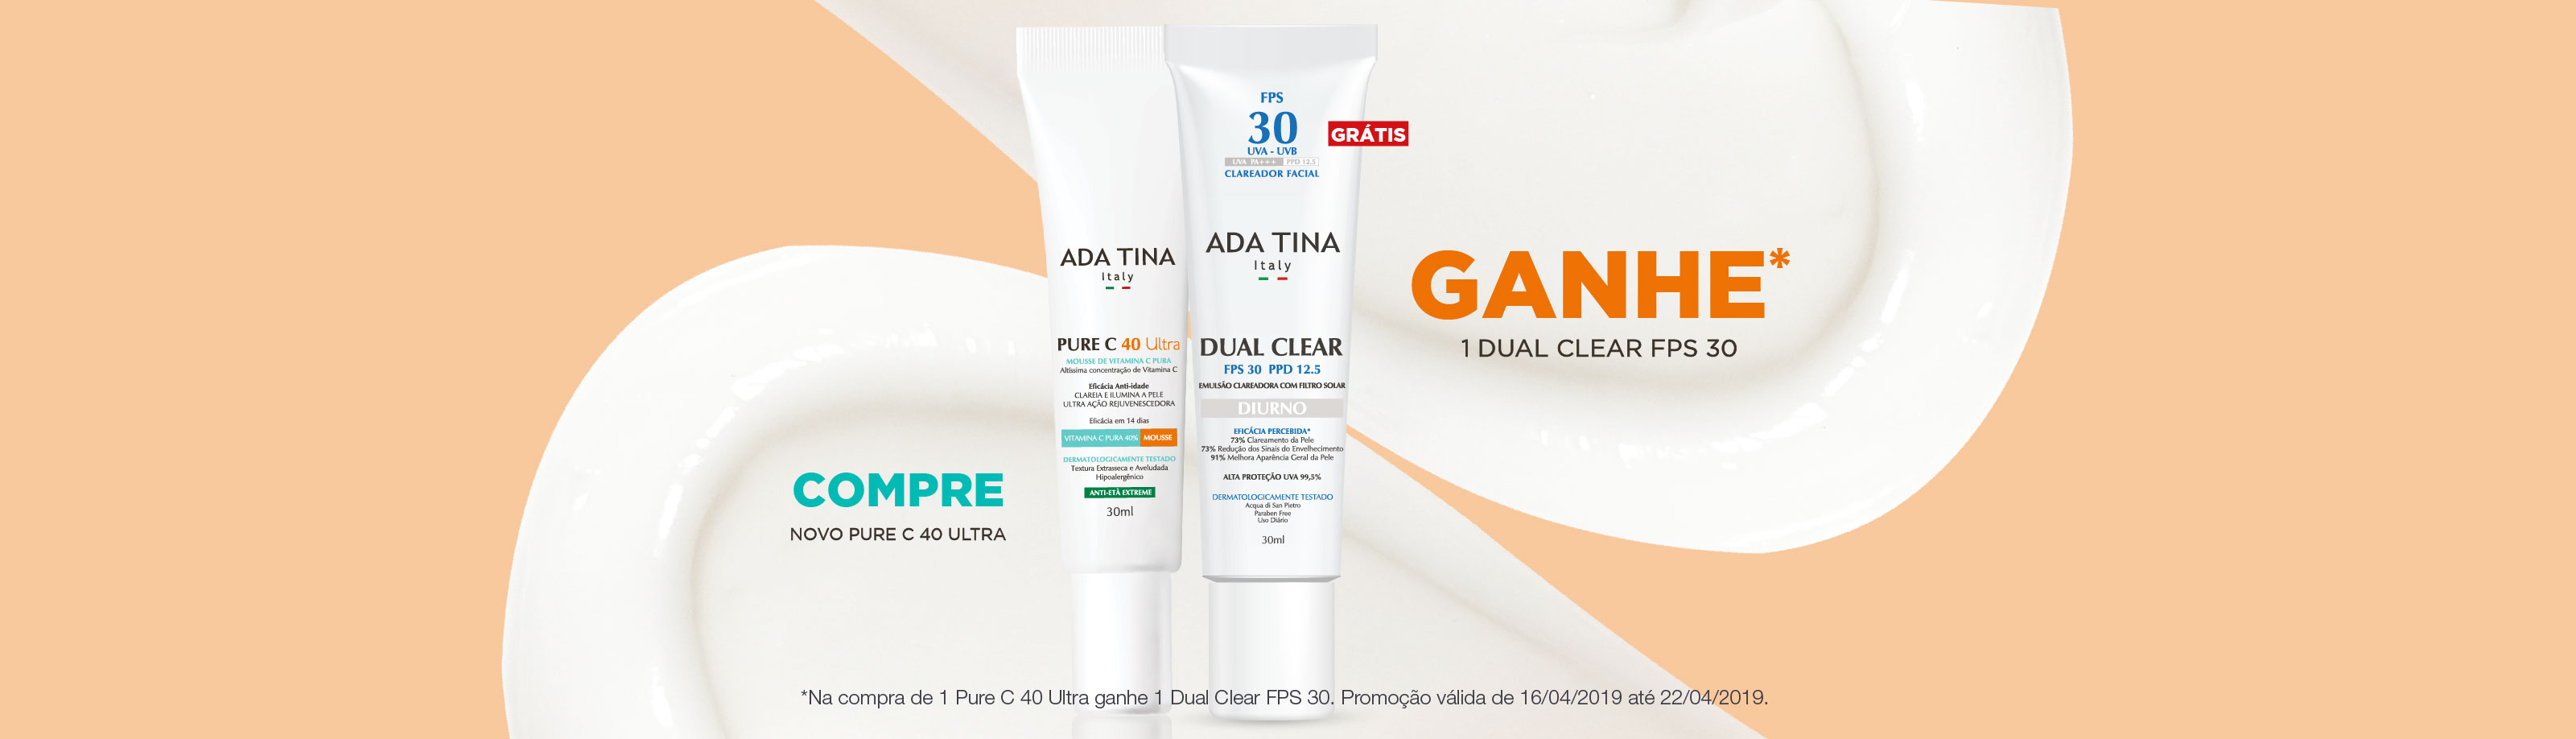 16/04 a 23/04 Pure C e Dual Clear FPS 30